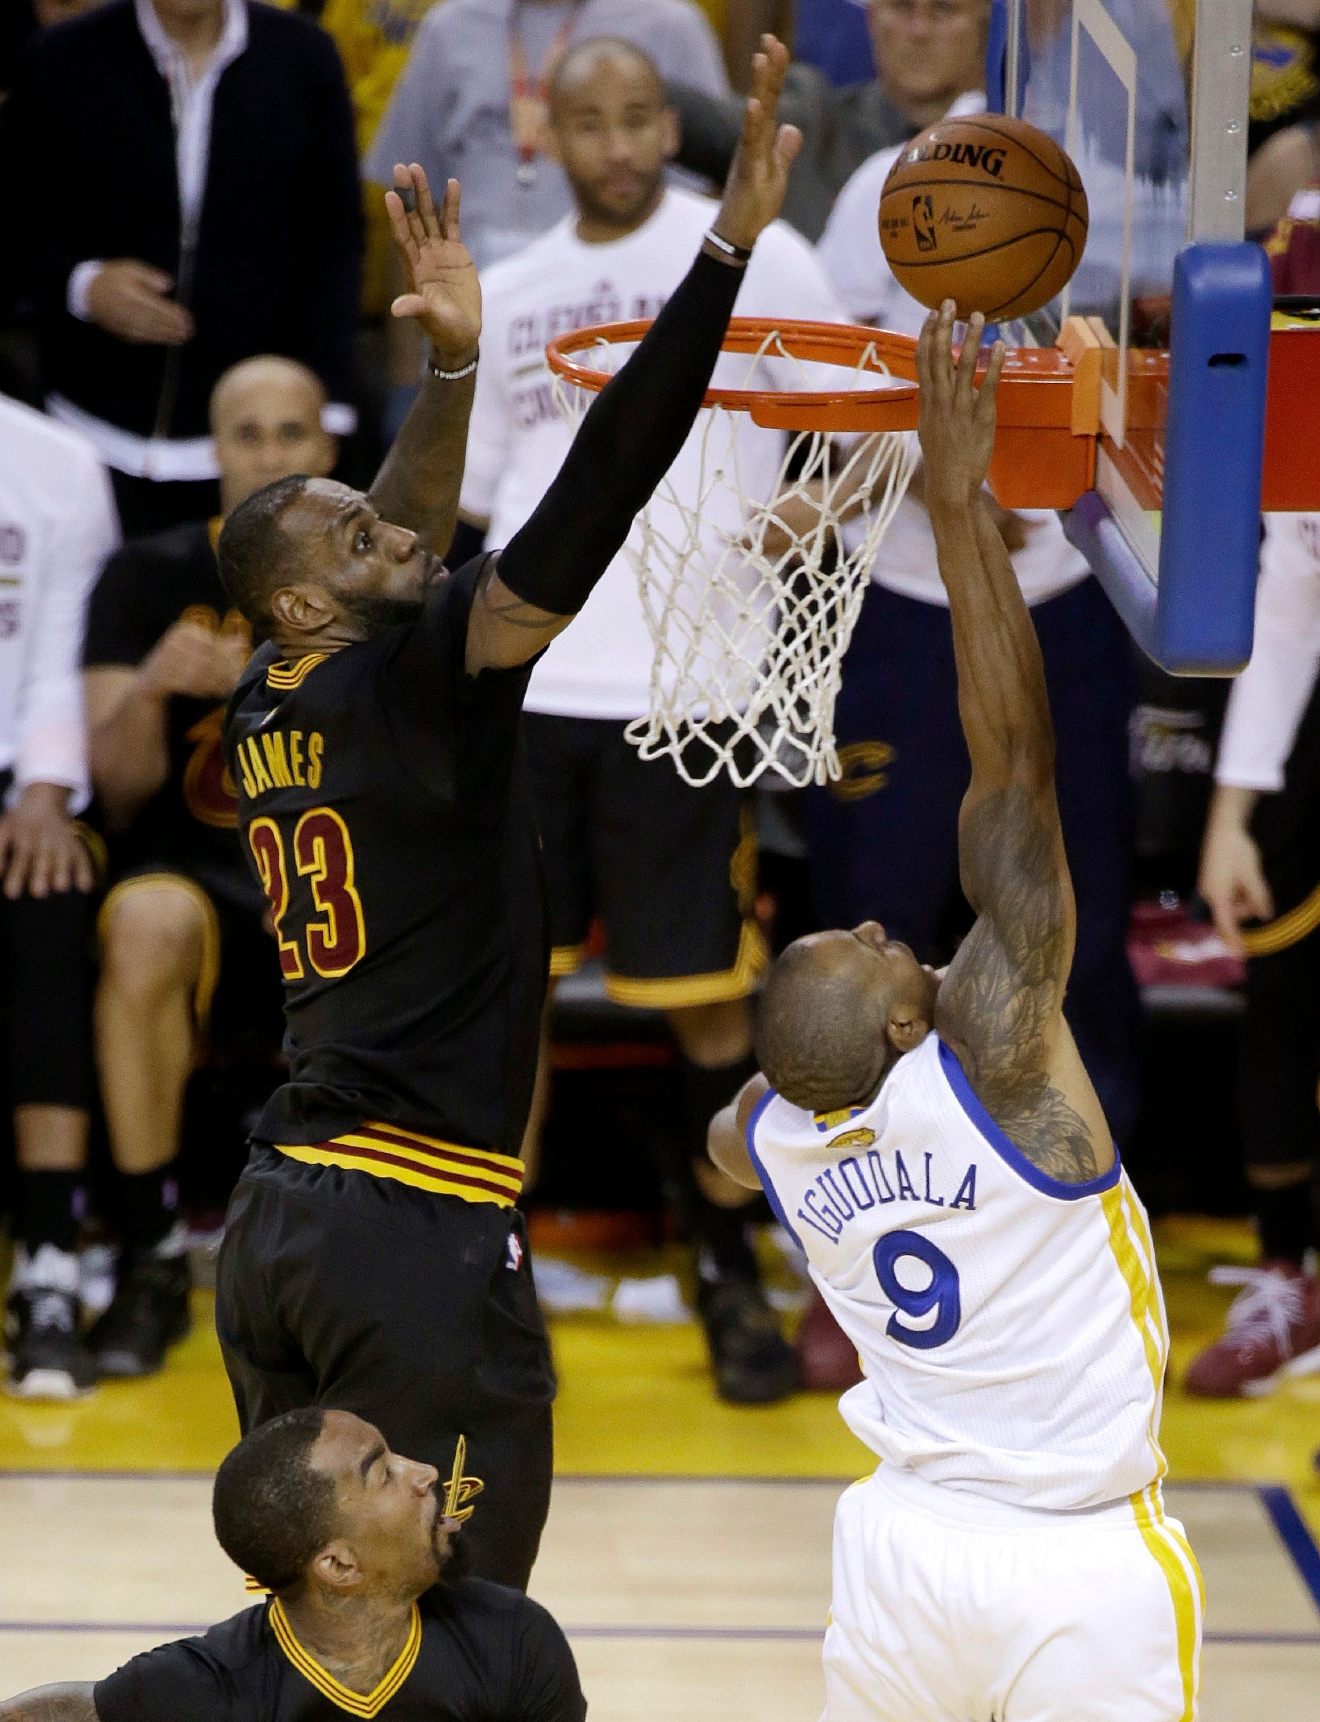 In this Sunday, June 19, 2016 photo, Cleveland Cavaliers forward LeBron James (23) blocks a shot by Golden State Warriors forward Andre Iguodala (9) during the second half of Game 7 of basketball's NBA Finals in Oakland, Calif. James had three blocked shots, including this key one against Iguodala on a fast break in the final minutes. The Cavaliers won 93-89. (AP Photo/Eric Risberg)